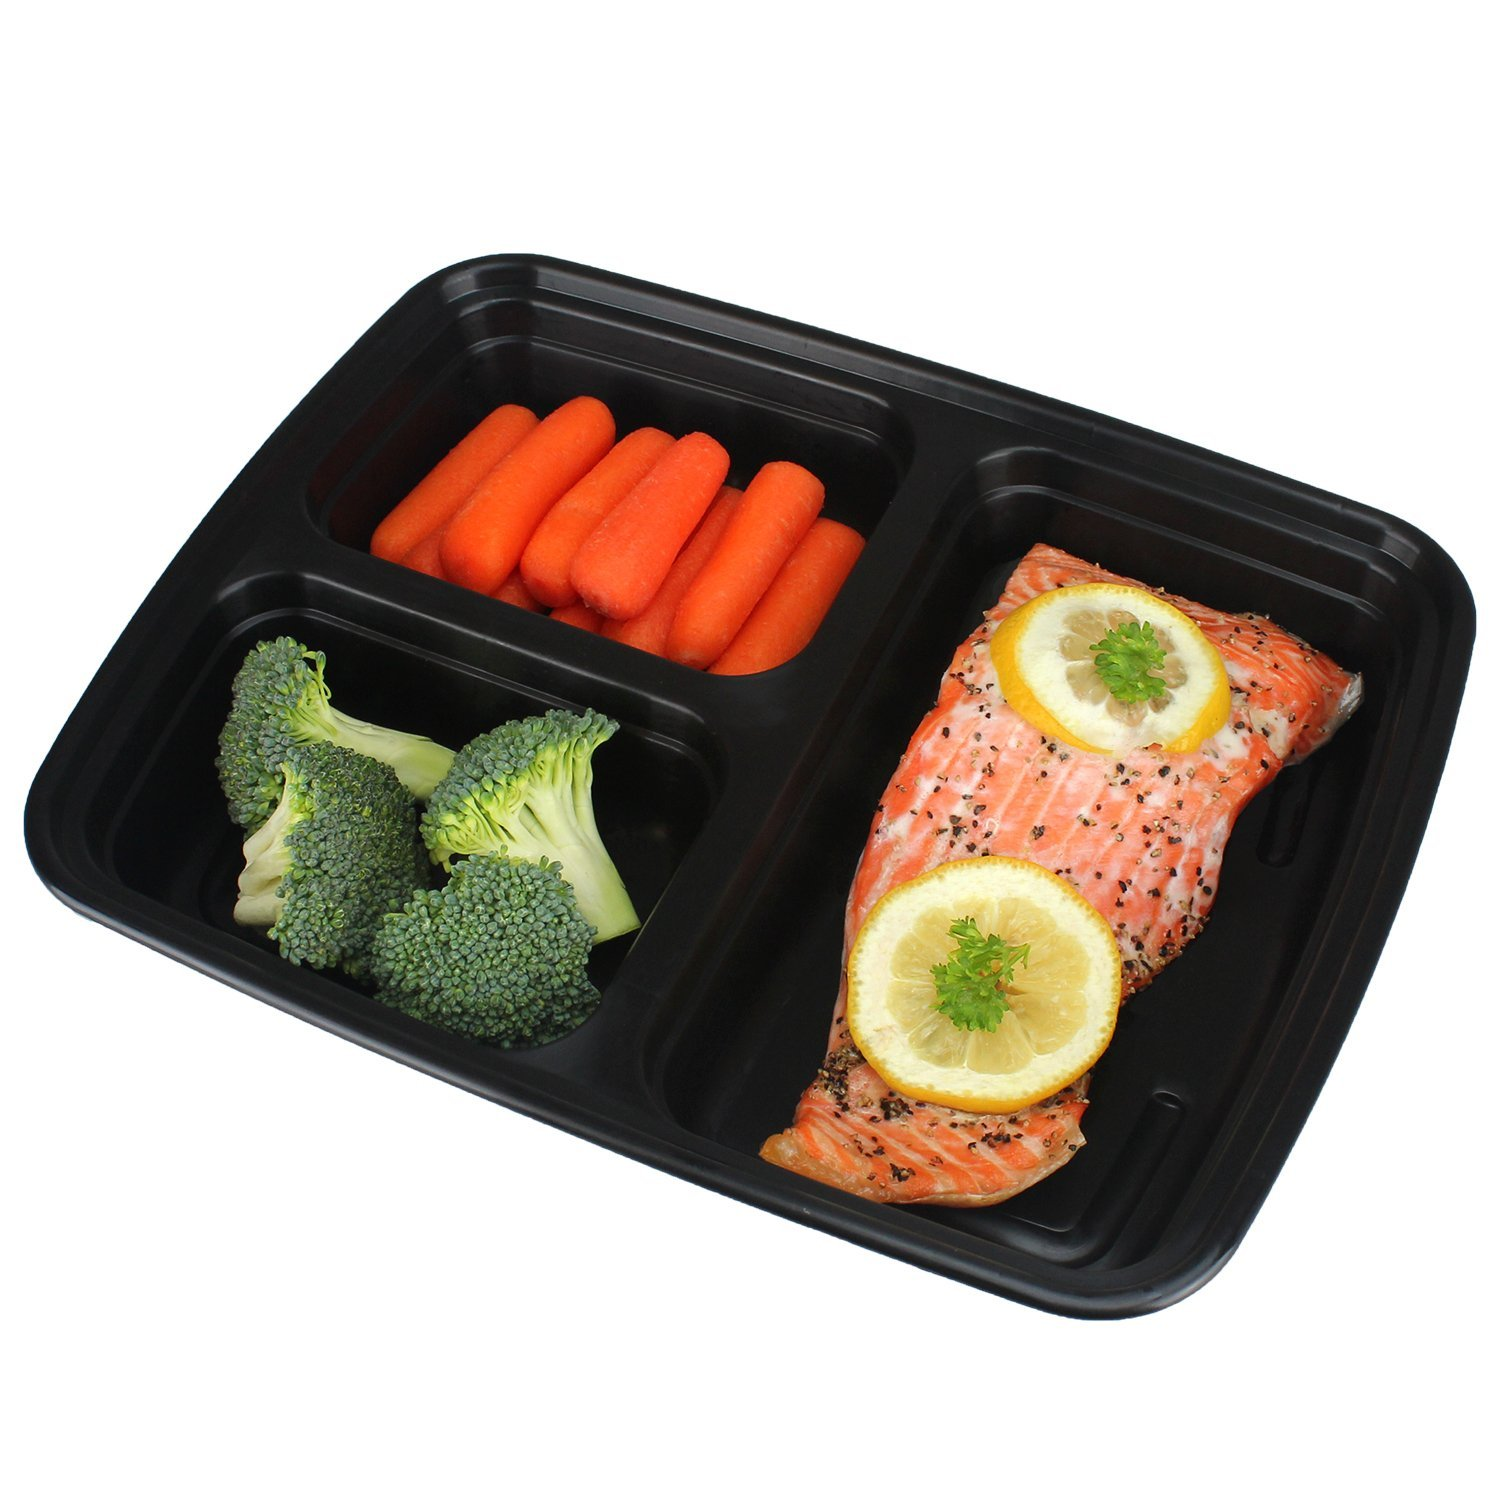 Freshware Meal Prep Containers [15 Pack] 3 Compartment with Lids, Food Containers, Lunch Box | BPA Free | Stackable | Bento Box, Microwave/Dishwasher/Freezer Safe, Portion Control, 21 day fix (32 oz) by Freshware (Image #3)